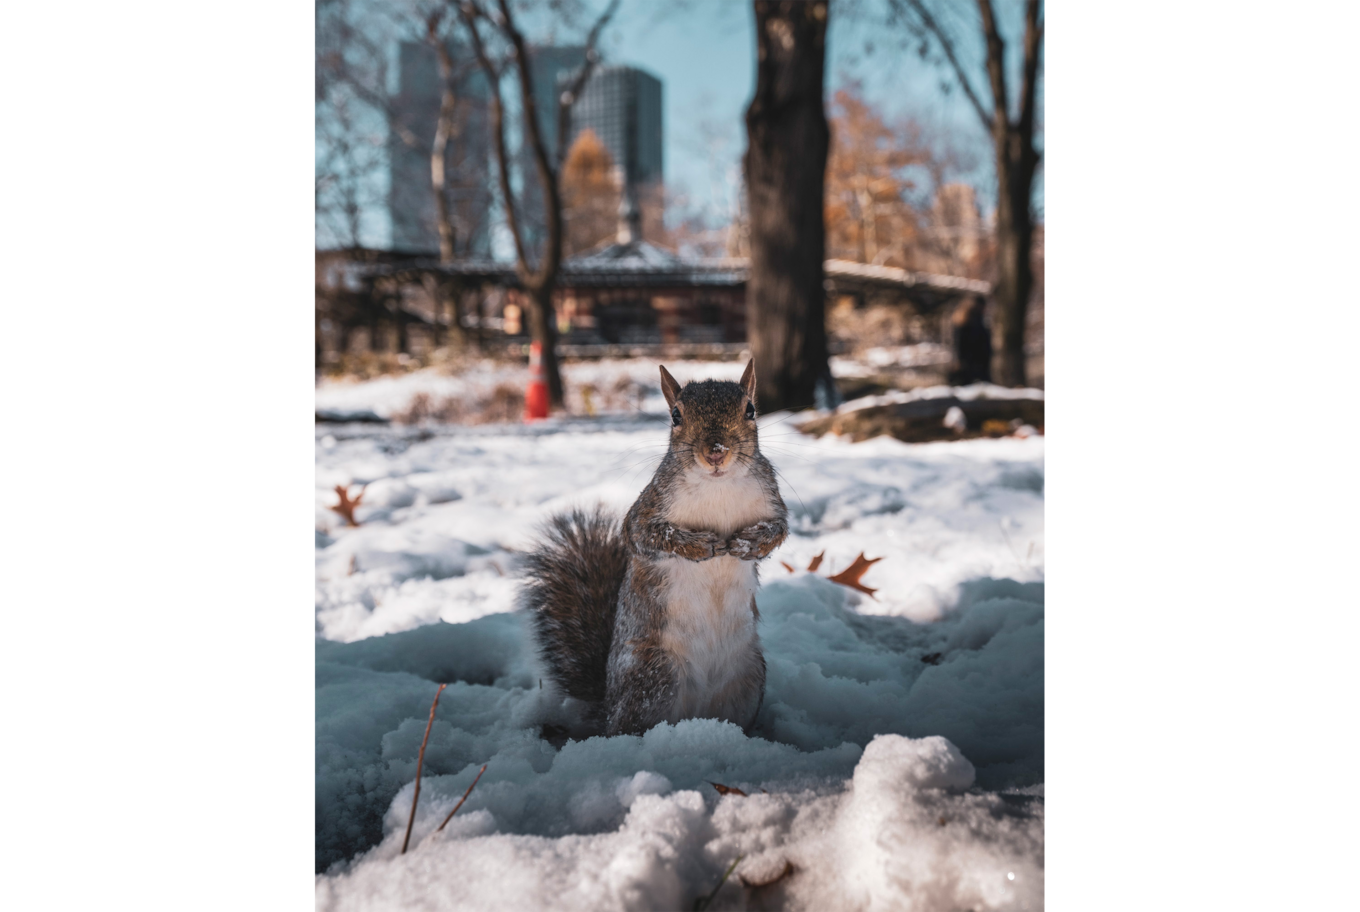 dennis schmelz sony alpha 7m3 portrait of a squirrel in a snowy park